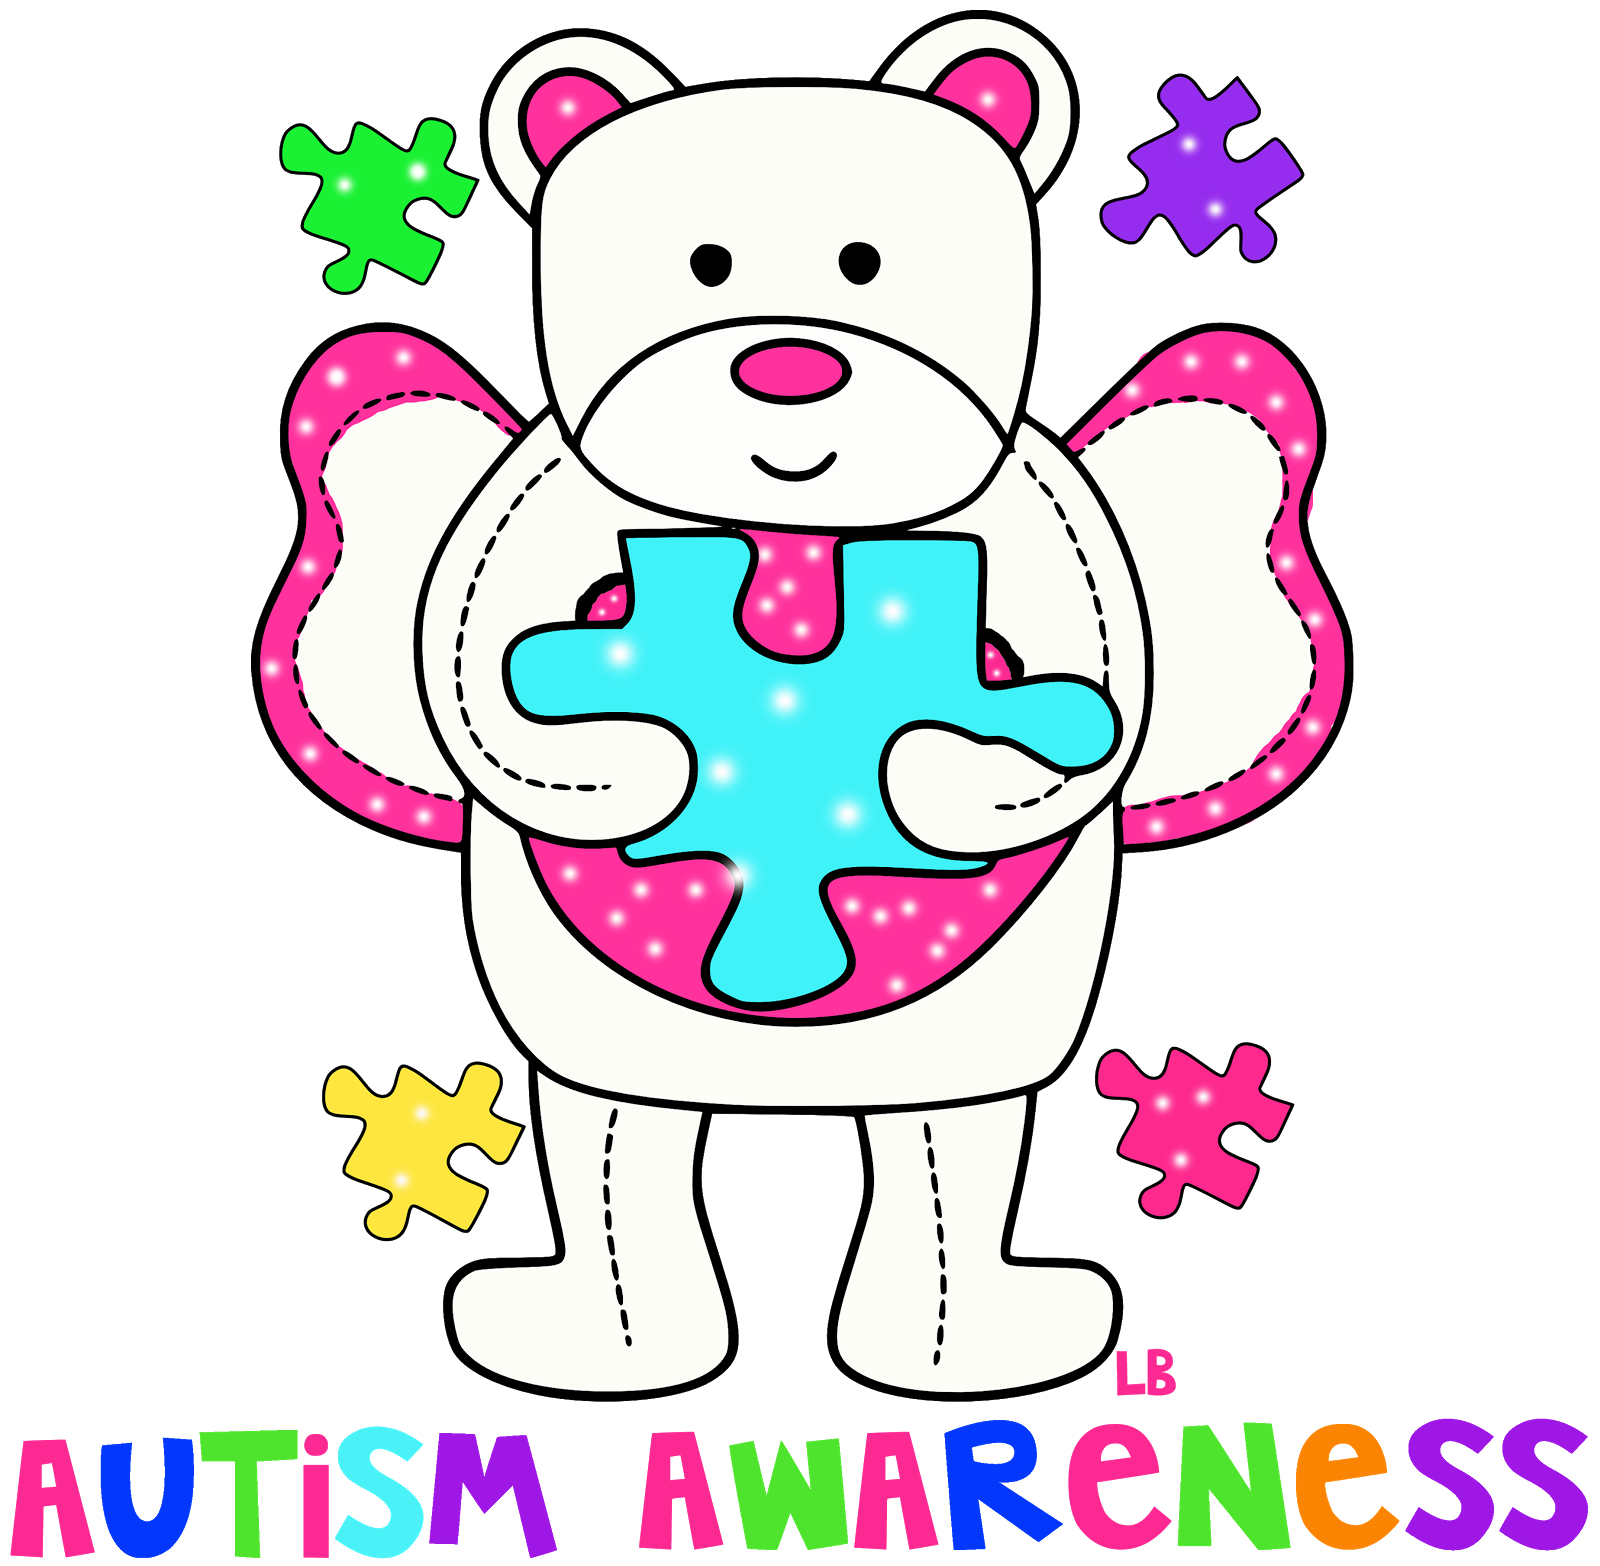 April images clipart clipart freeuse stock April is autism awareness month clip art - ClipartFest clipart freeuse stock